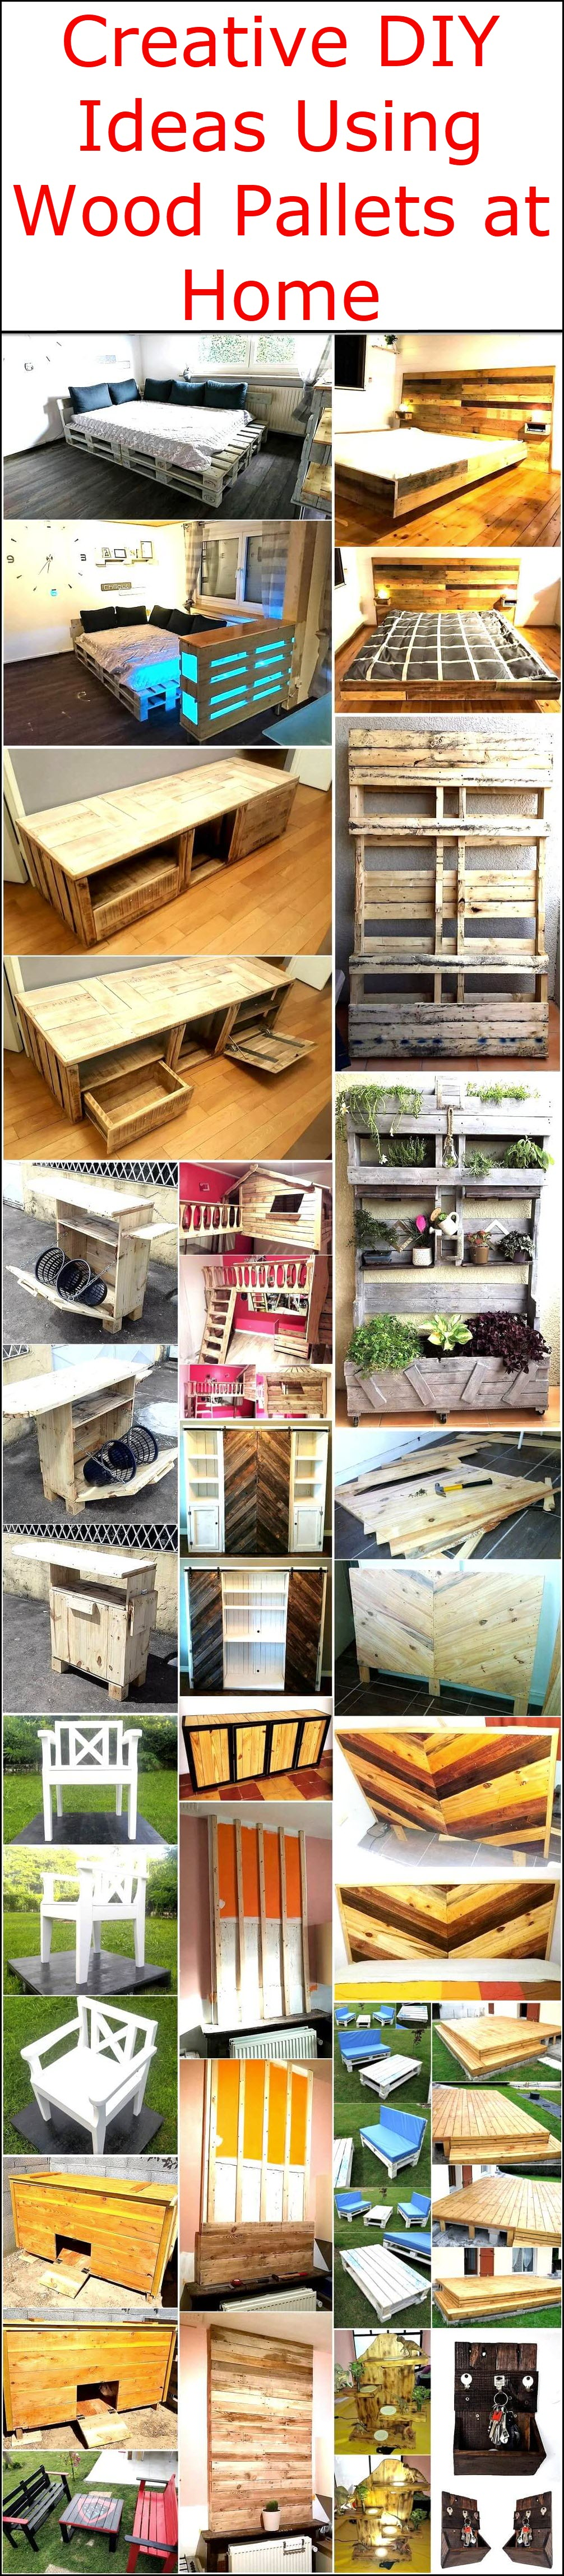 Creative Diy Ideas Using Wood Pallets At Home Pallet Ideas